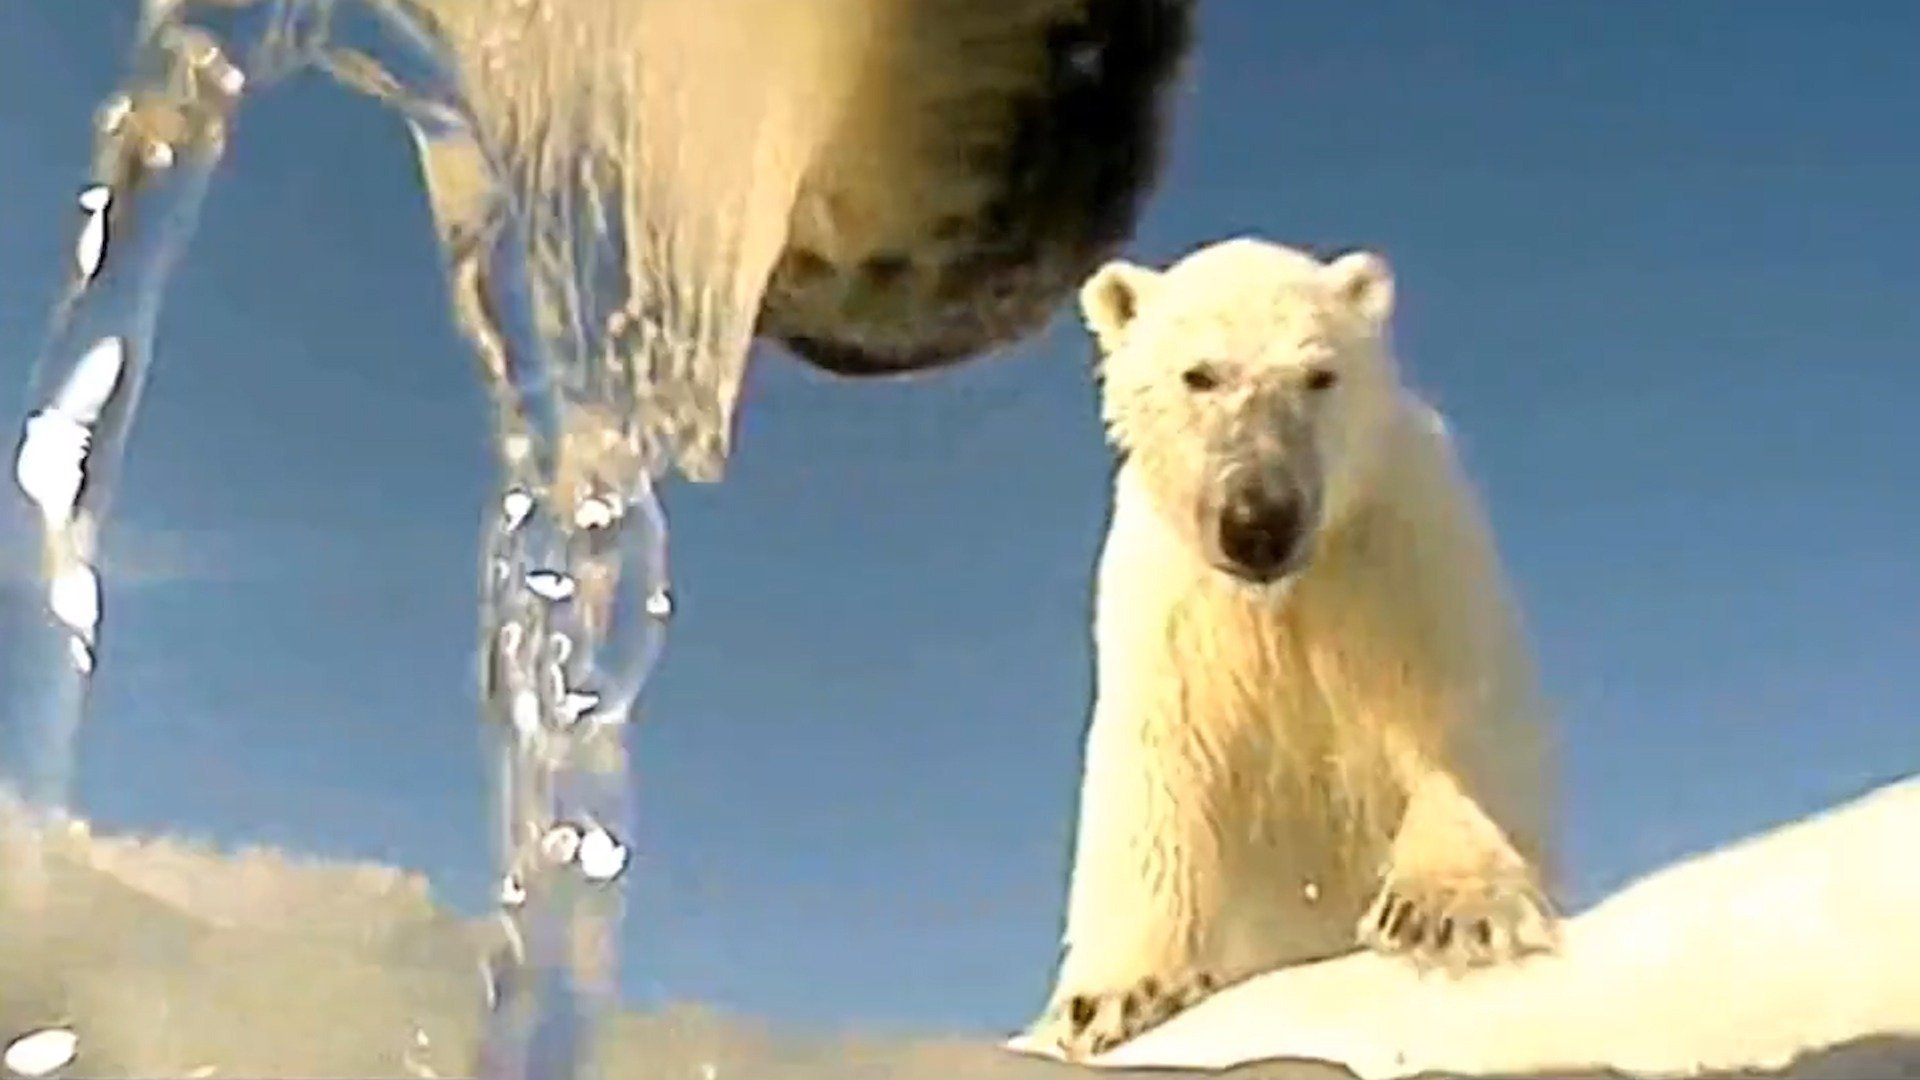 A polar bear is seen in a file photo. (Credit: U.S. Geological Survey)